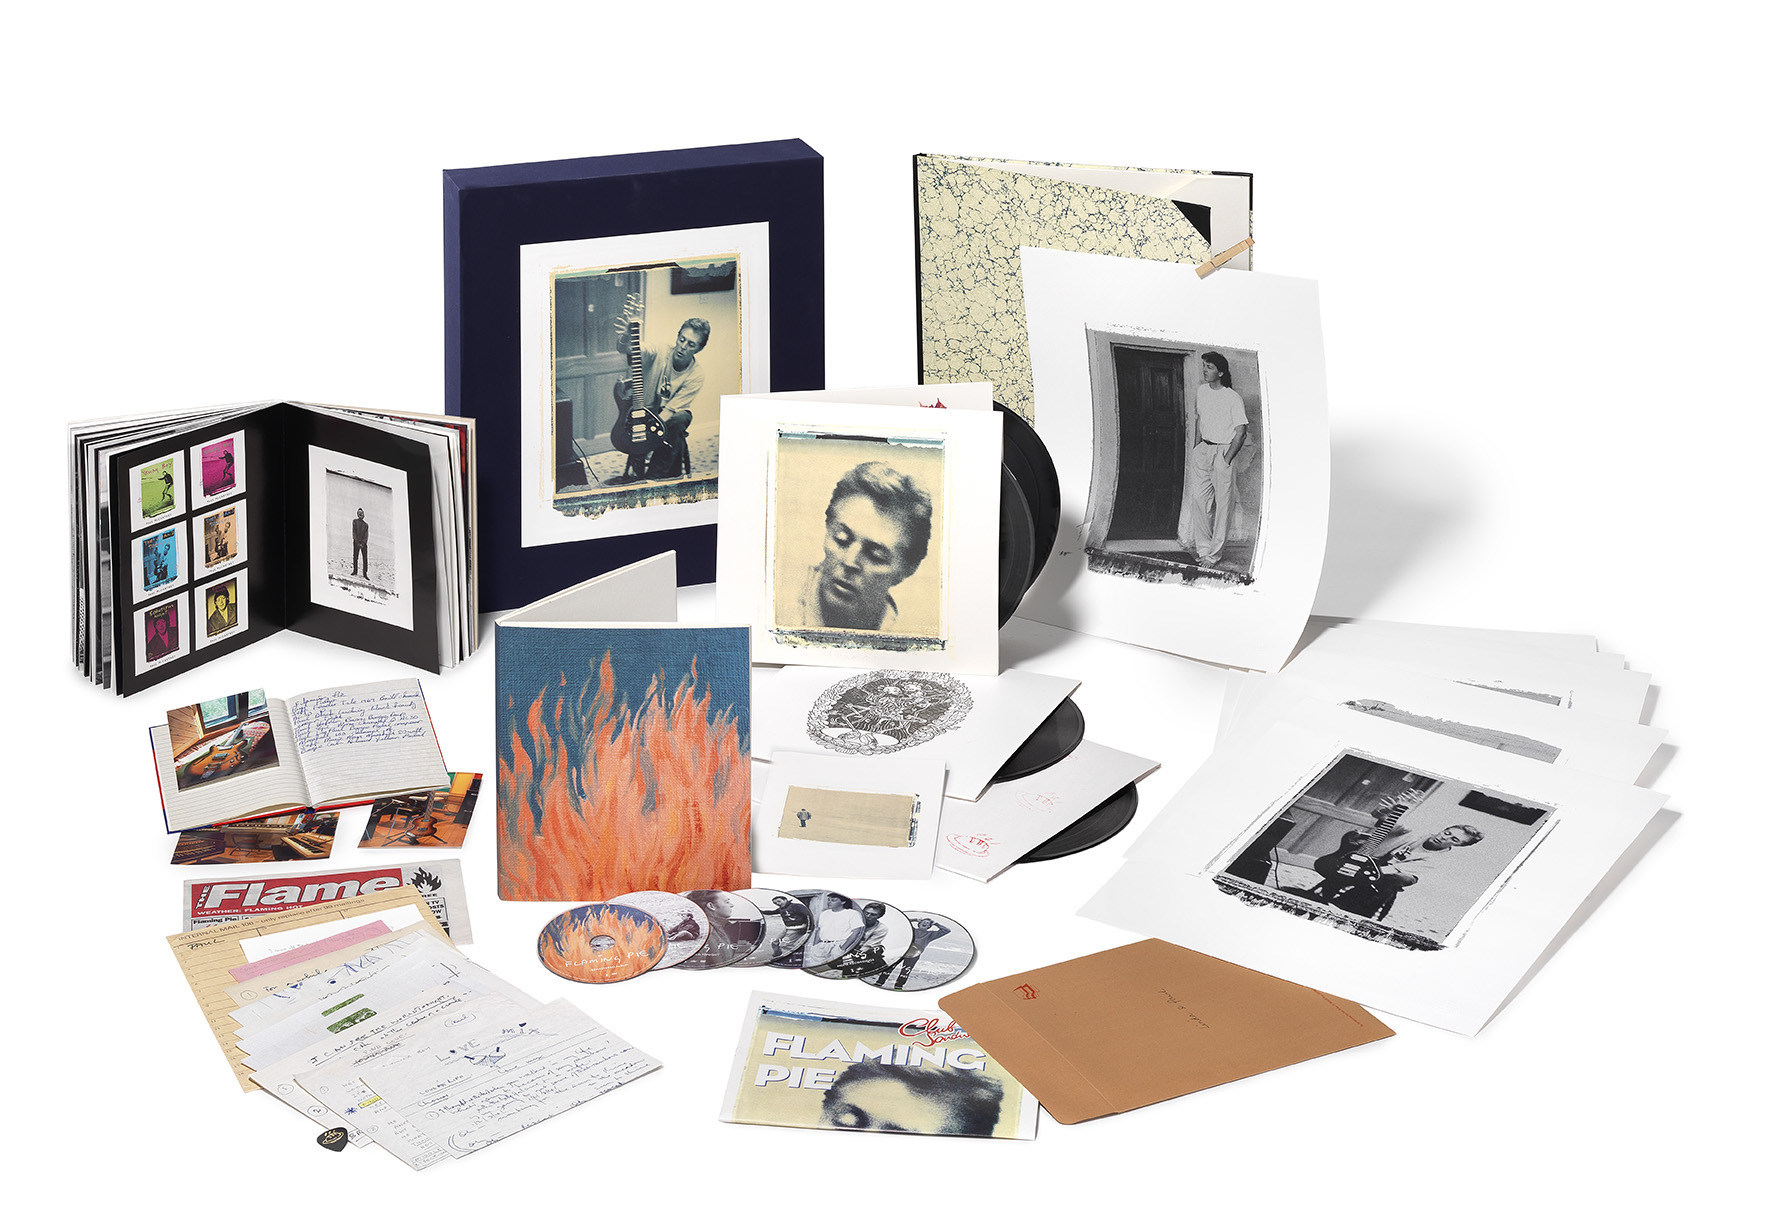 Paul McCartney Previously Unreleased Material, Photos, & Much More To Be Released July 31